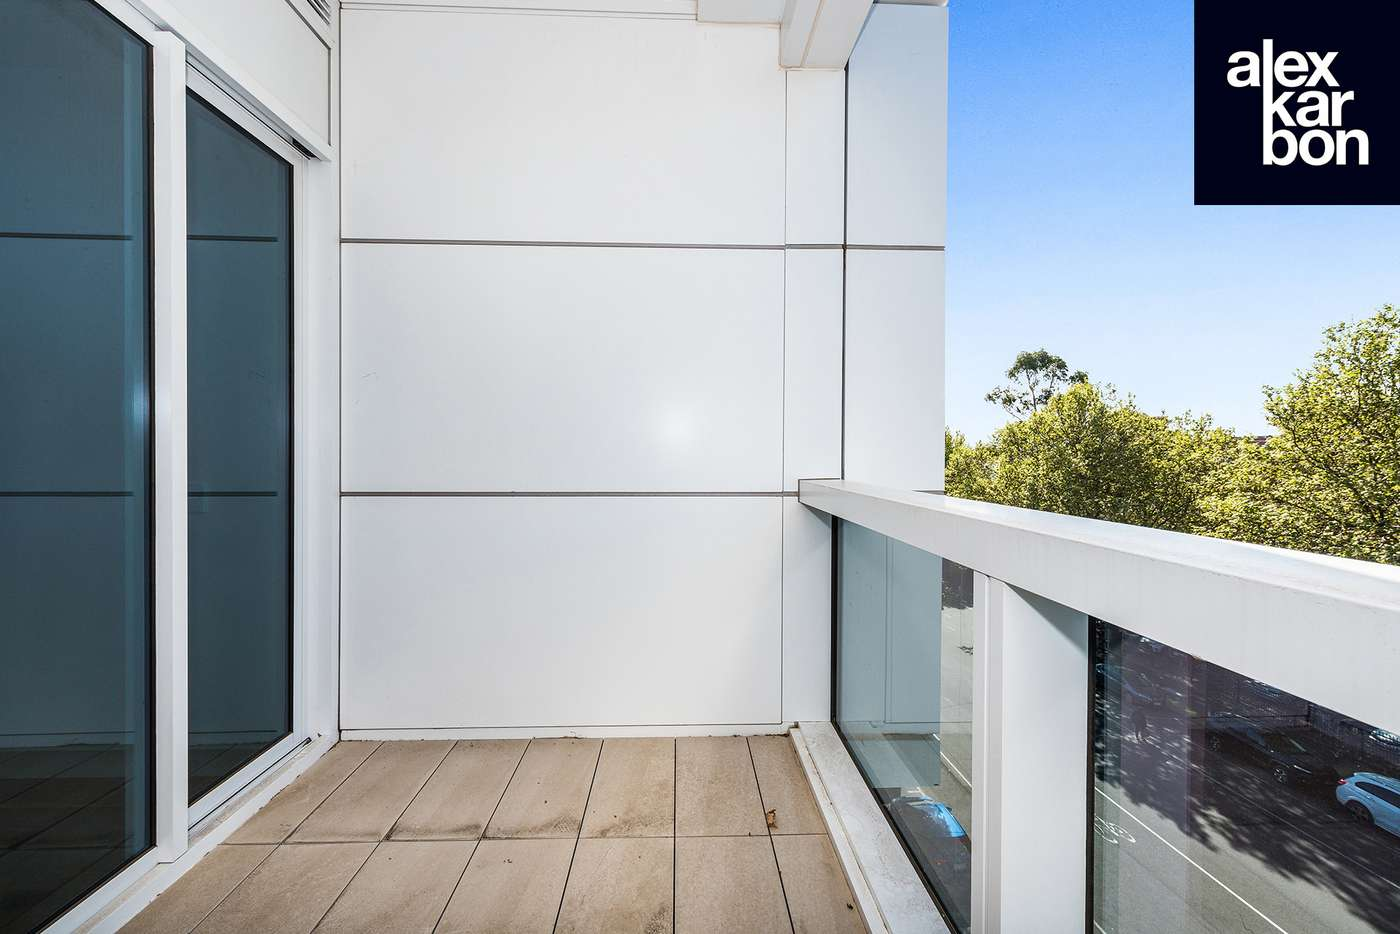 Fifth view of Homely apartment listing, 322/111 Canning Street, North Melbourne VIC 3051